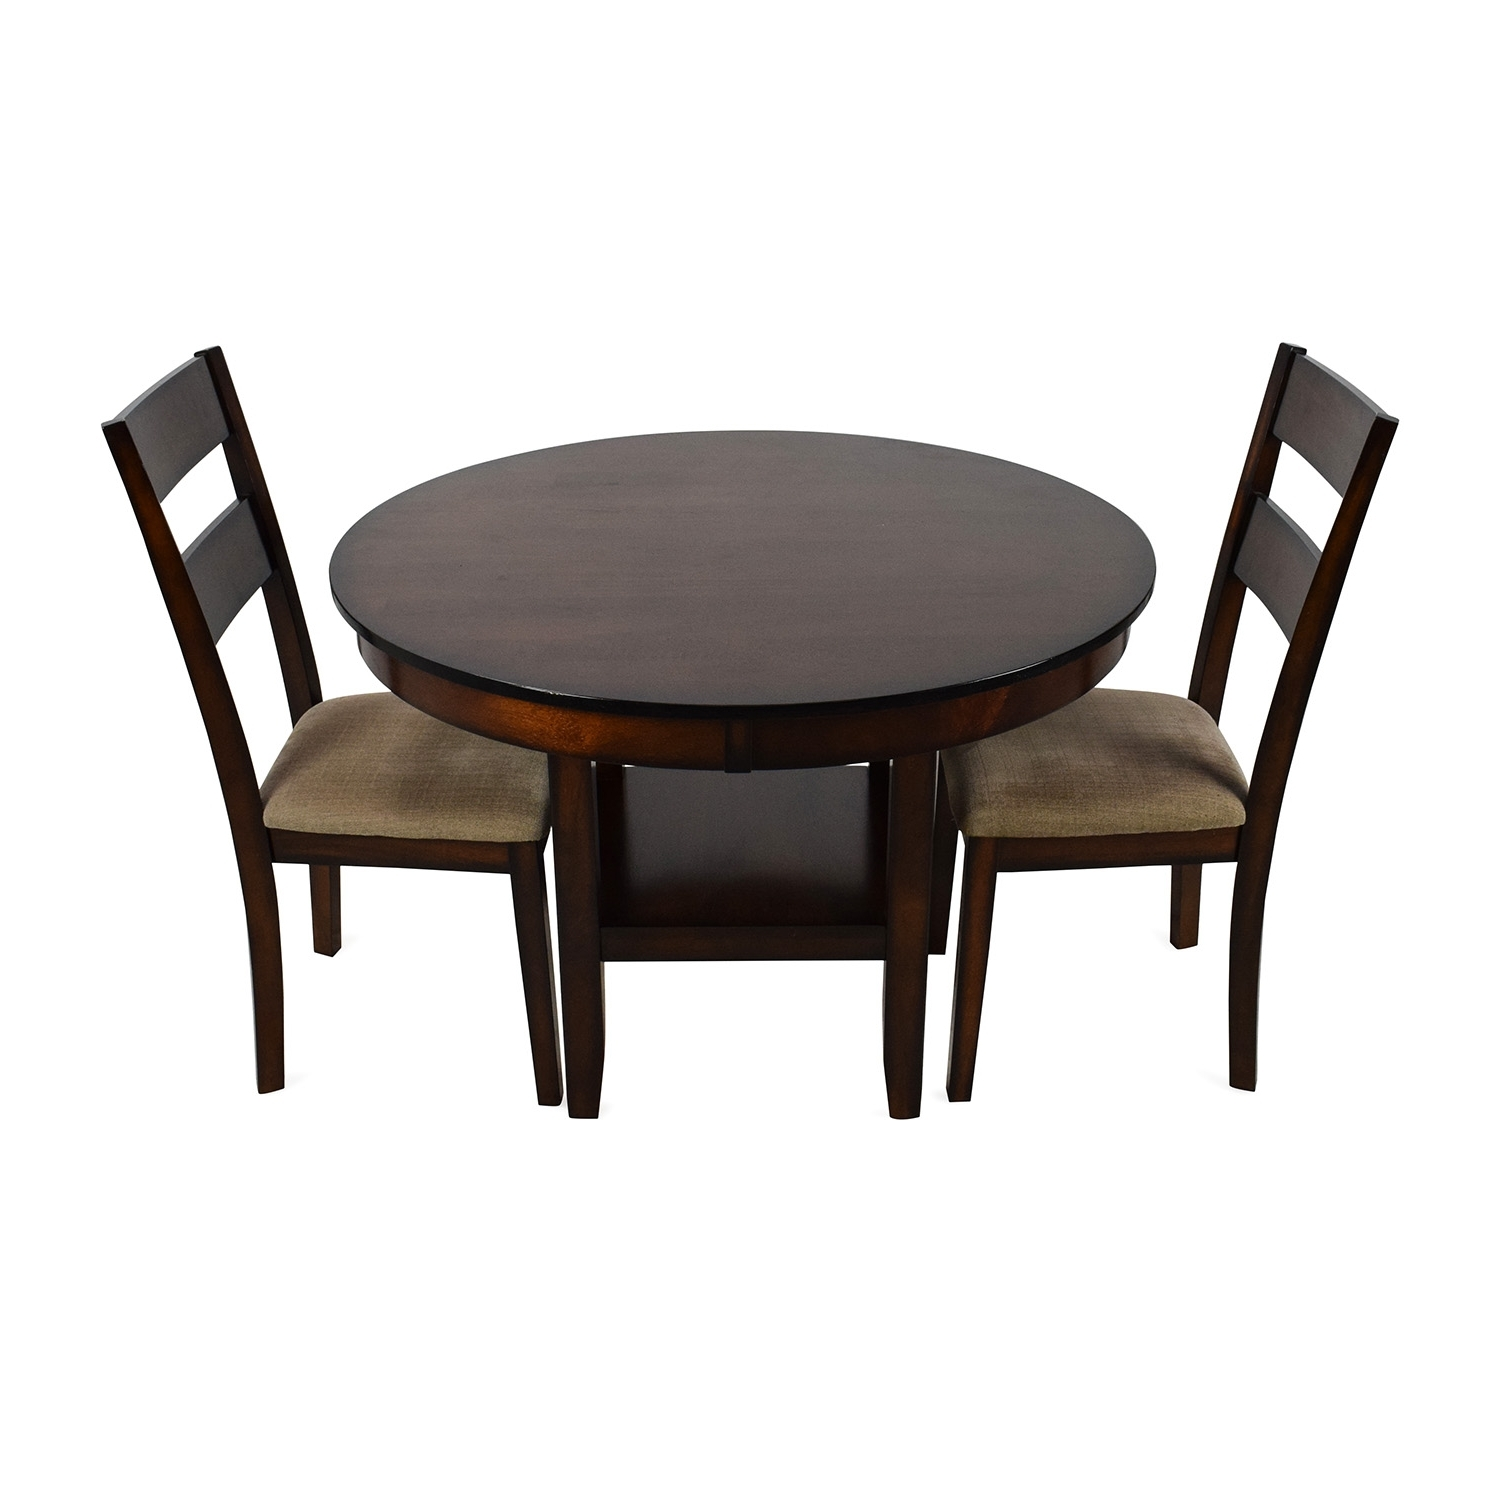 [%85% Off – Macy's Macy's Branton 3 Piece Dining Room Collection / Tables For Most Popular Macie 5 Piece Round Dining Sets|Macie 5 Piece Round Dining Sets In Current 85% Off – Macy's Macy's Branton 3 Piece Dining Room Collection / Tables|Most Recent Macie 5 Piece Round Dining Sets With Regard To 85% Off – Macy's Macy's Branton 3 Piece Dining Room Collection / Tables|Well Liked 85% Off – Macy's Macy's Branton 3 Piece Dining Room Collection / Tables Within Macie 5 Piece Round Dining Sets%] (View 3 of 25)